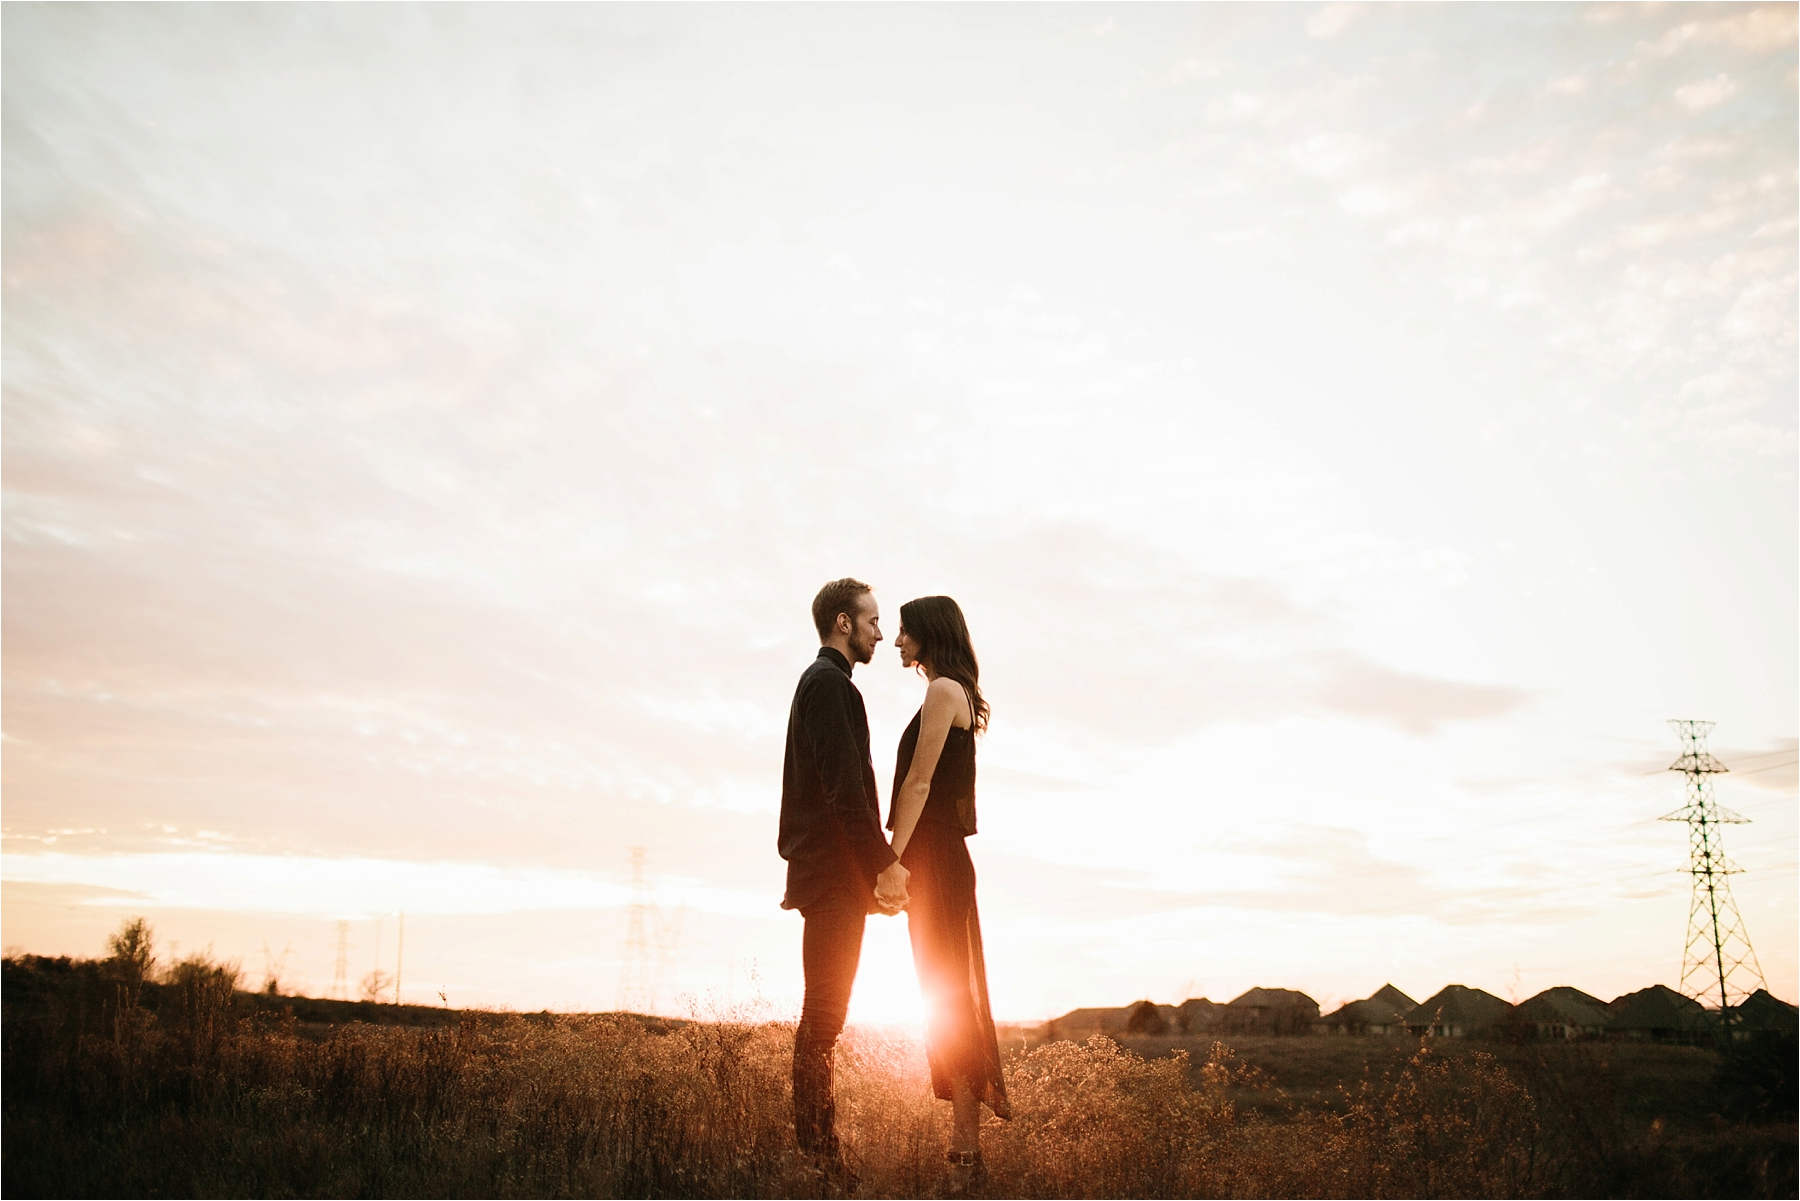 Trey + Phoebe __ a playful, intimate engagement session with dark_neutral outfit inspiration by North Texas Wedding Photographer Rachel Meagan Photography __ 48